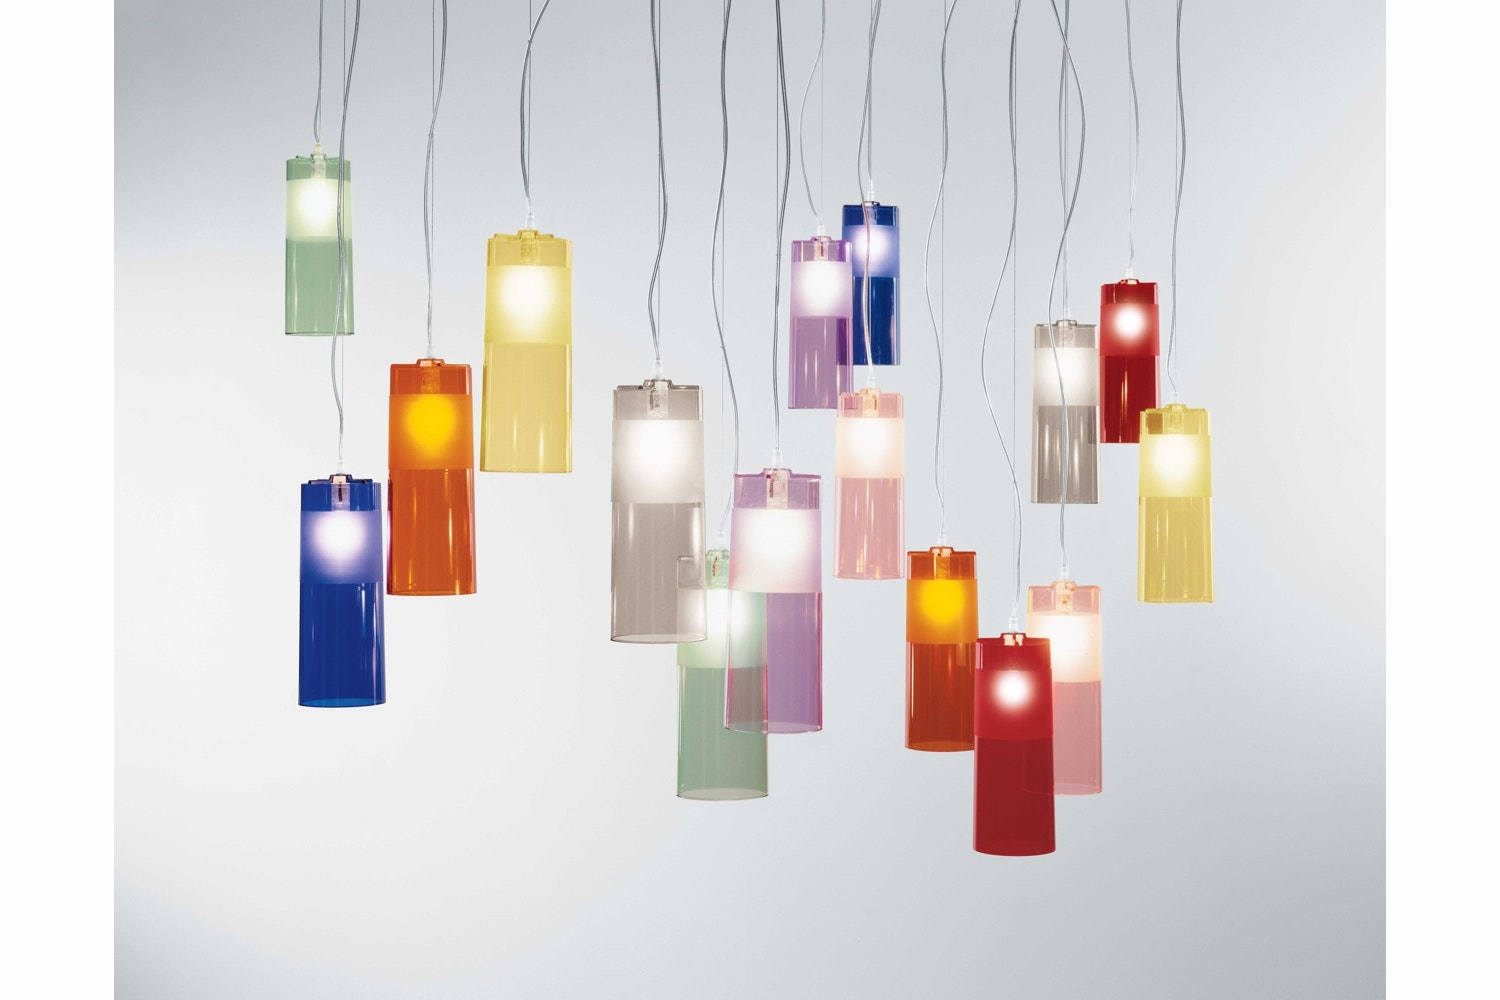 Easy Suspension Lamp by Ferruccio Laviani for Kartell